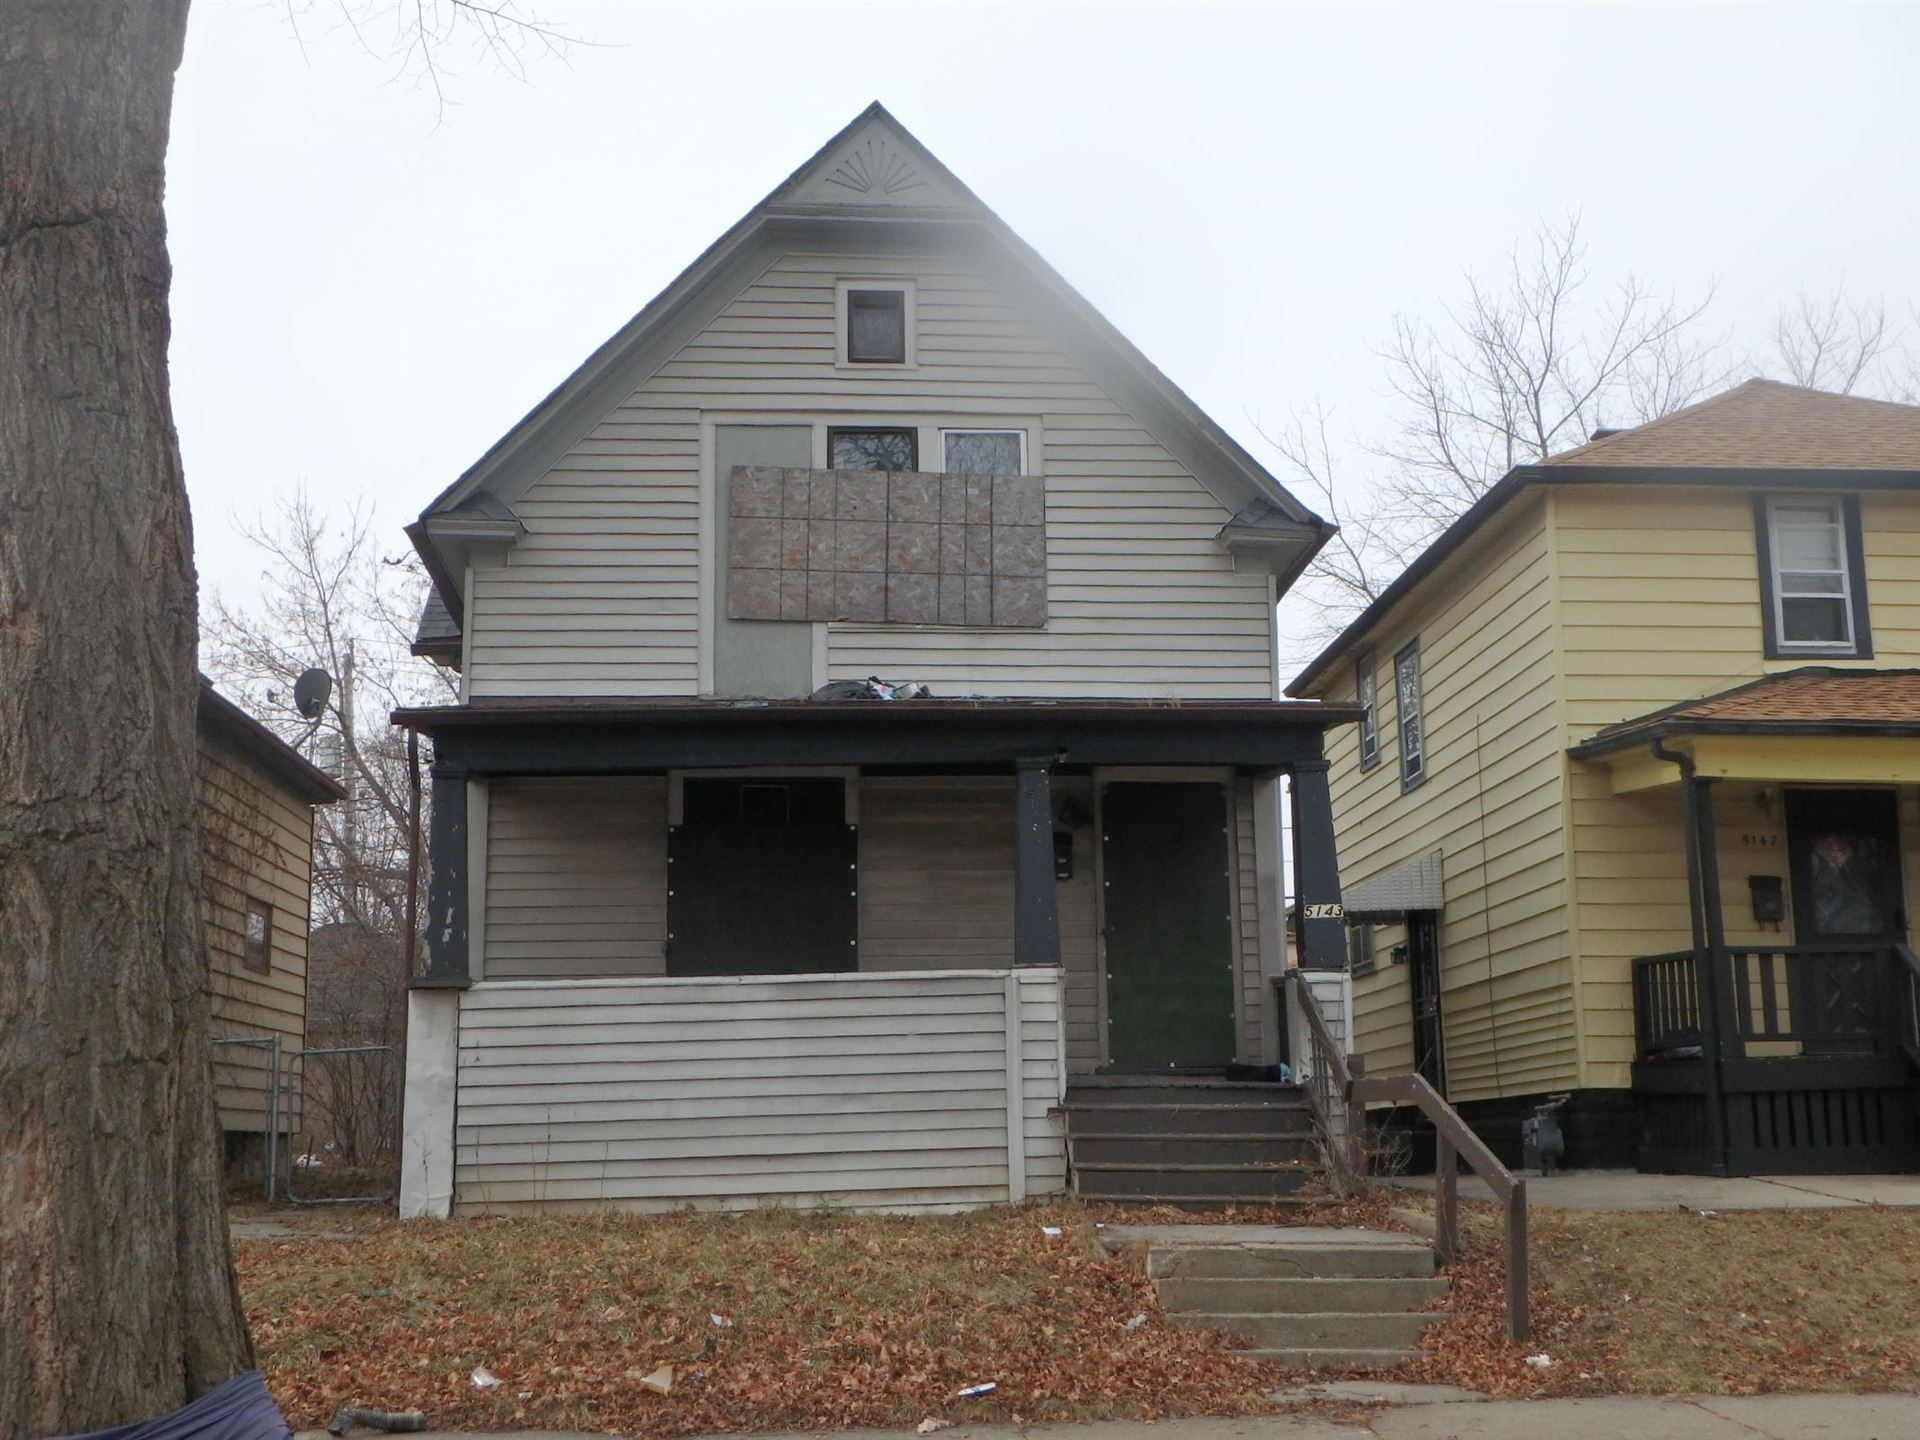 5141 N 31st St #5143, Milwaukee, WI 53209 - #: 1716813